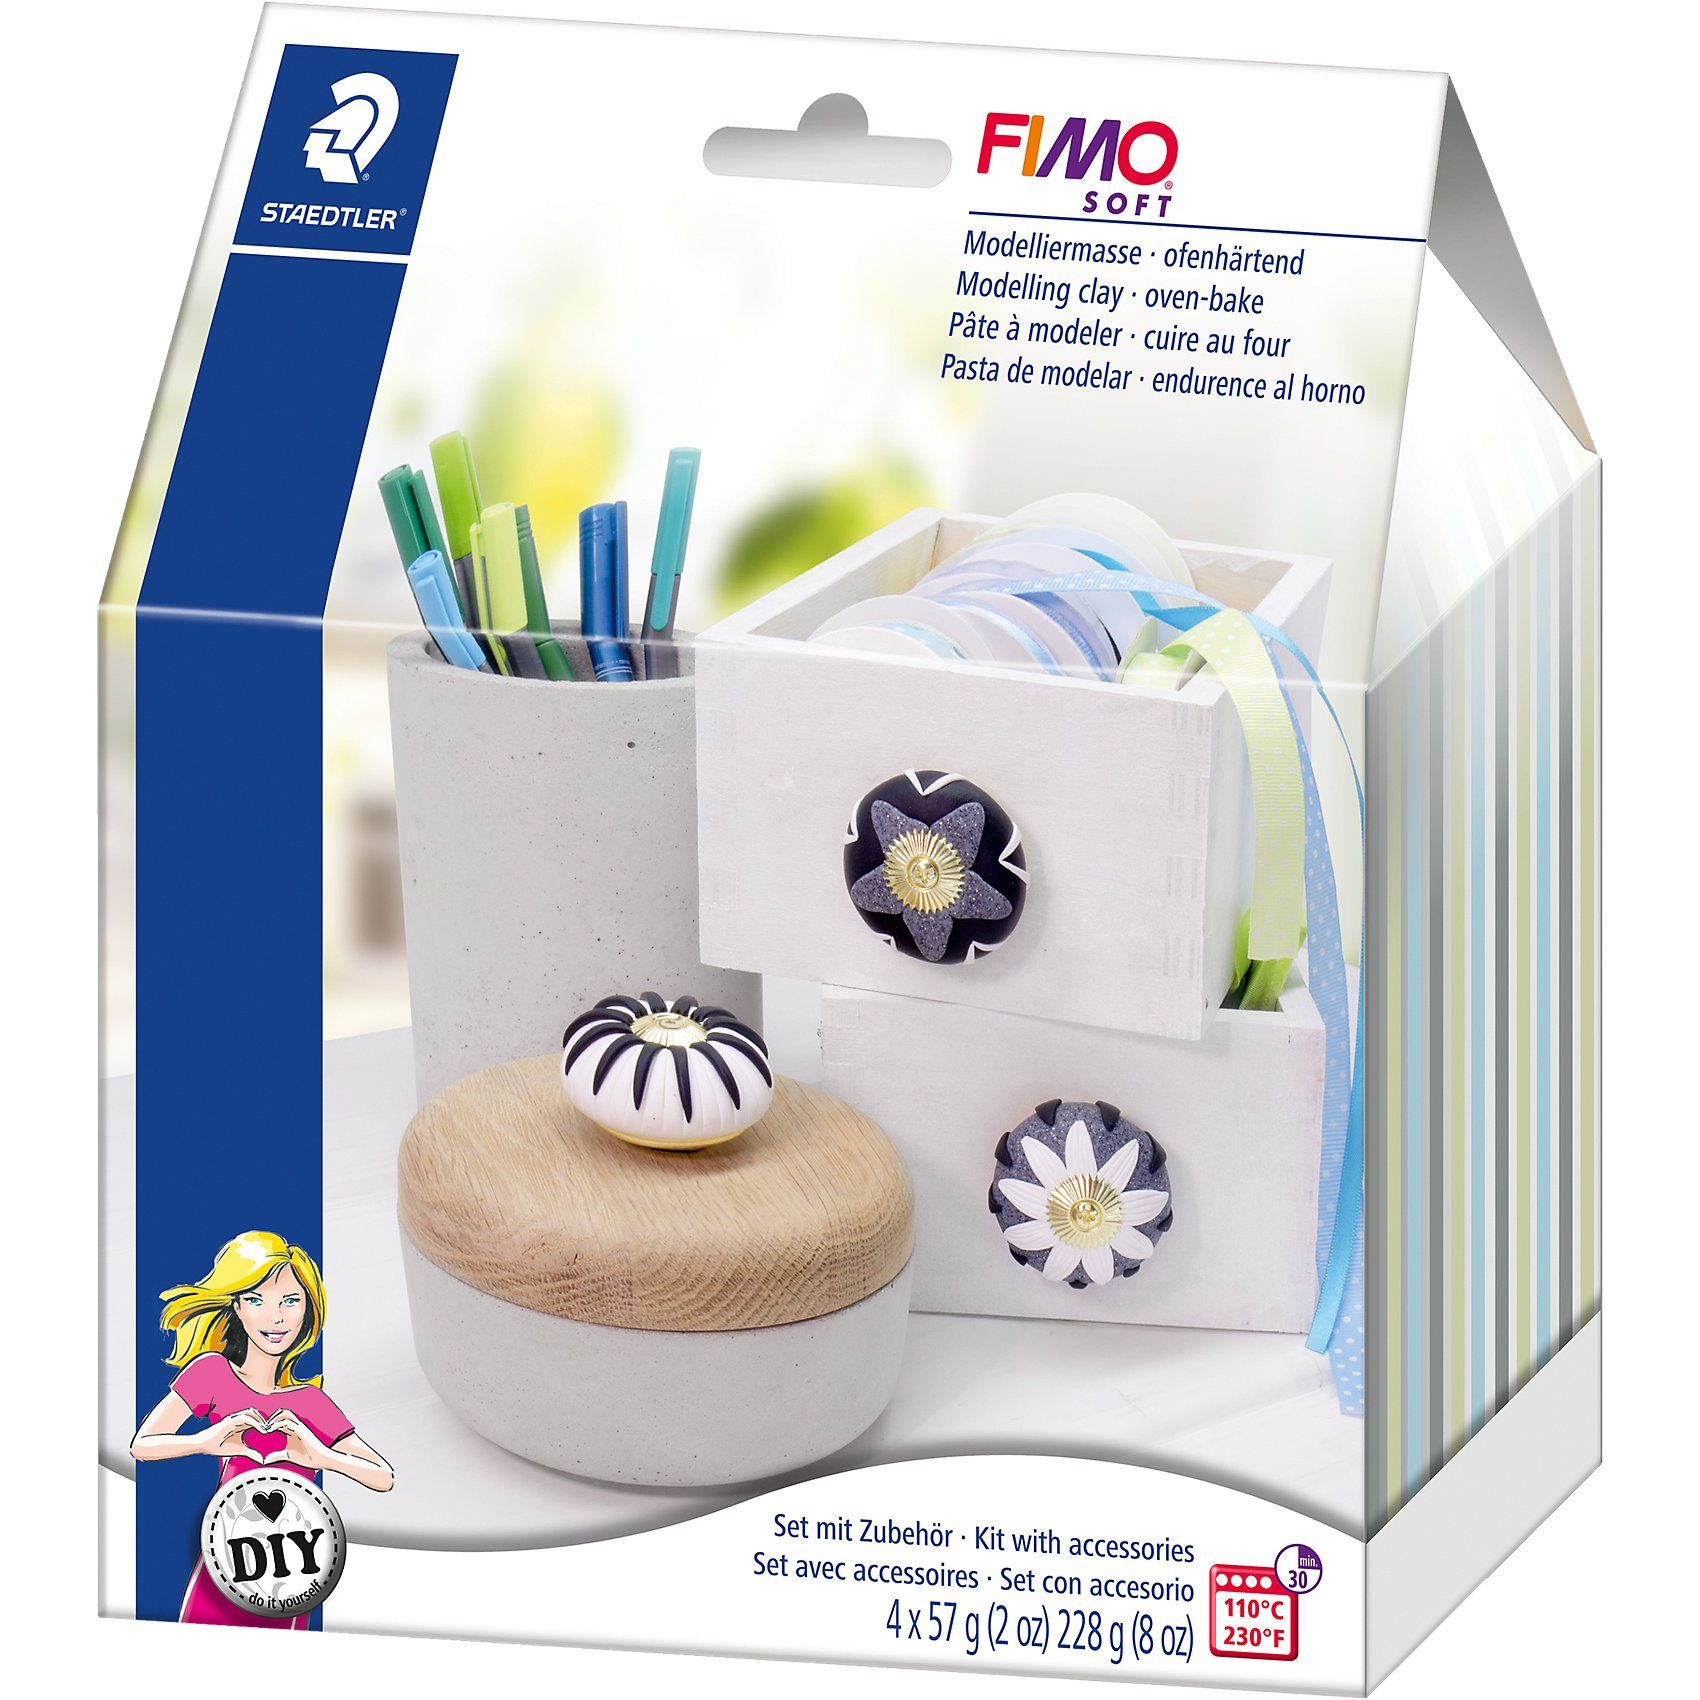 FIMO soft DIY Home Deco Möbelknöpfe